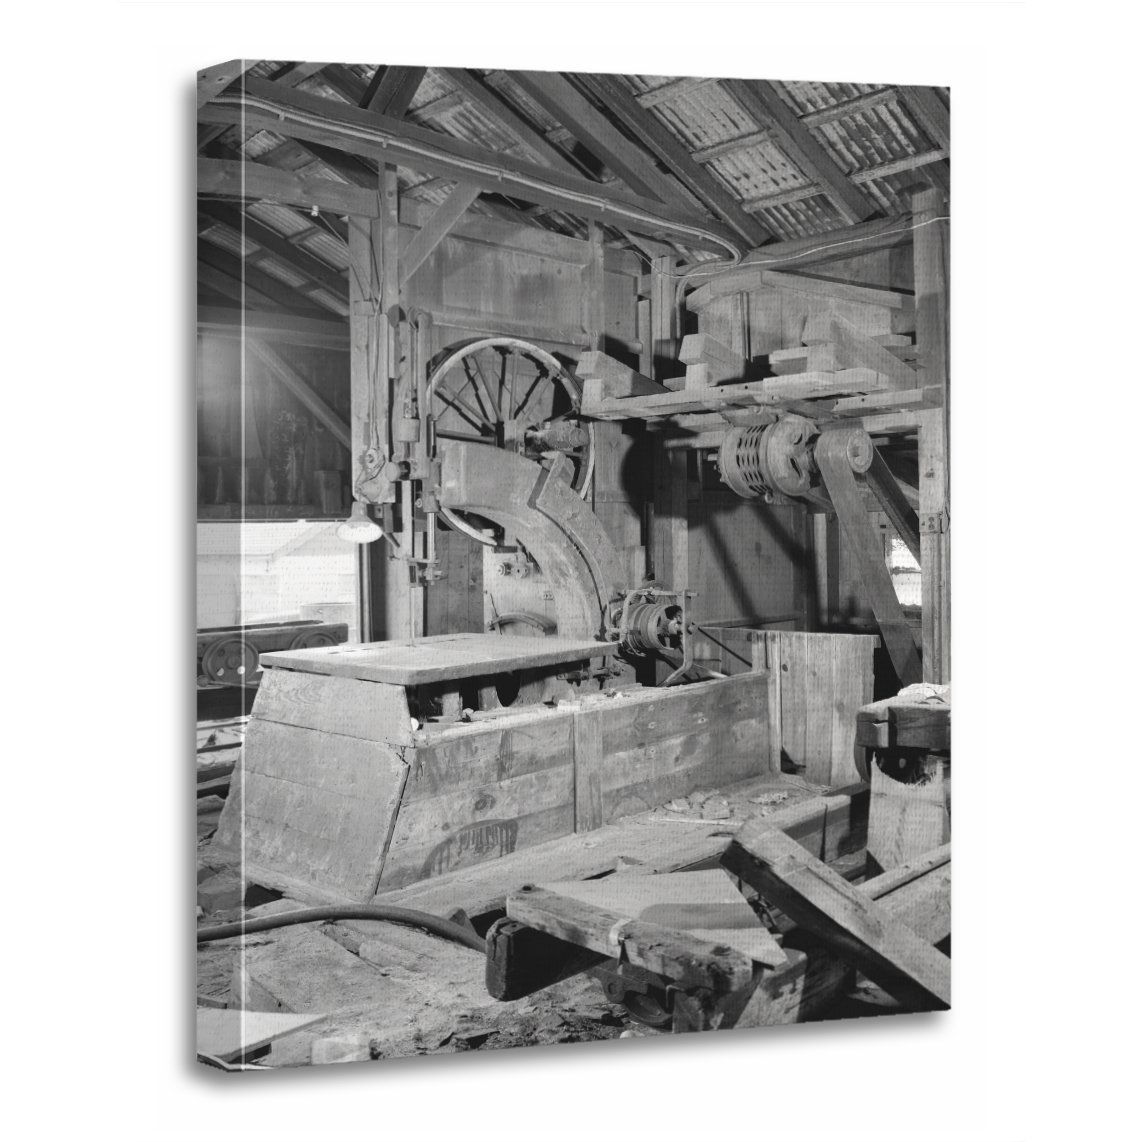 TORASS Canvas Wall Art Print Photos Industrial Sawmill Band Saw Photography  Artwork for Home Decor 12